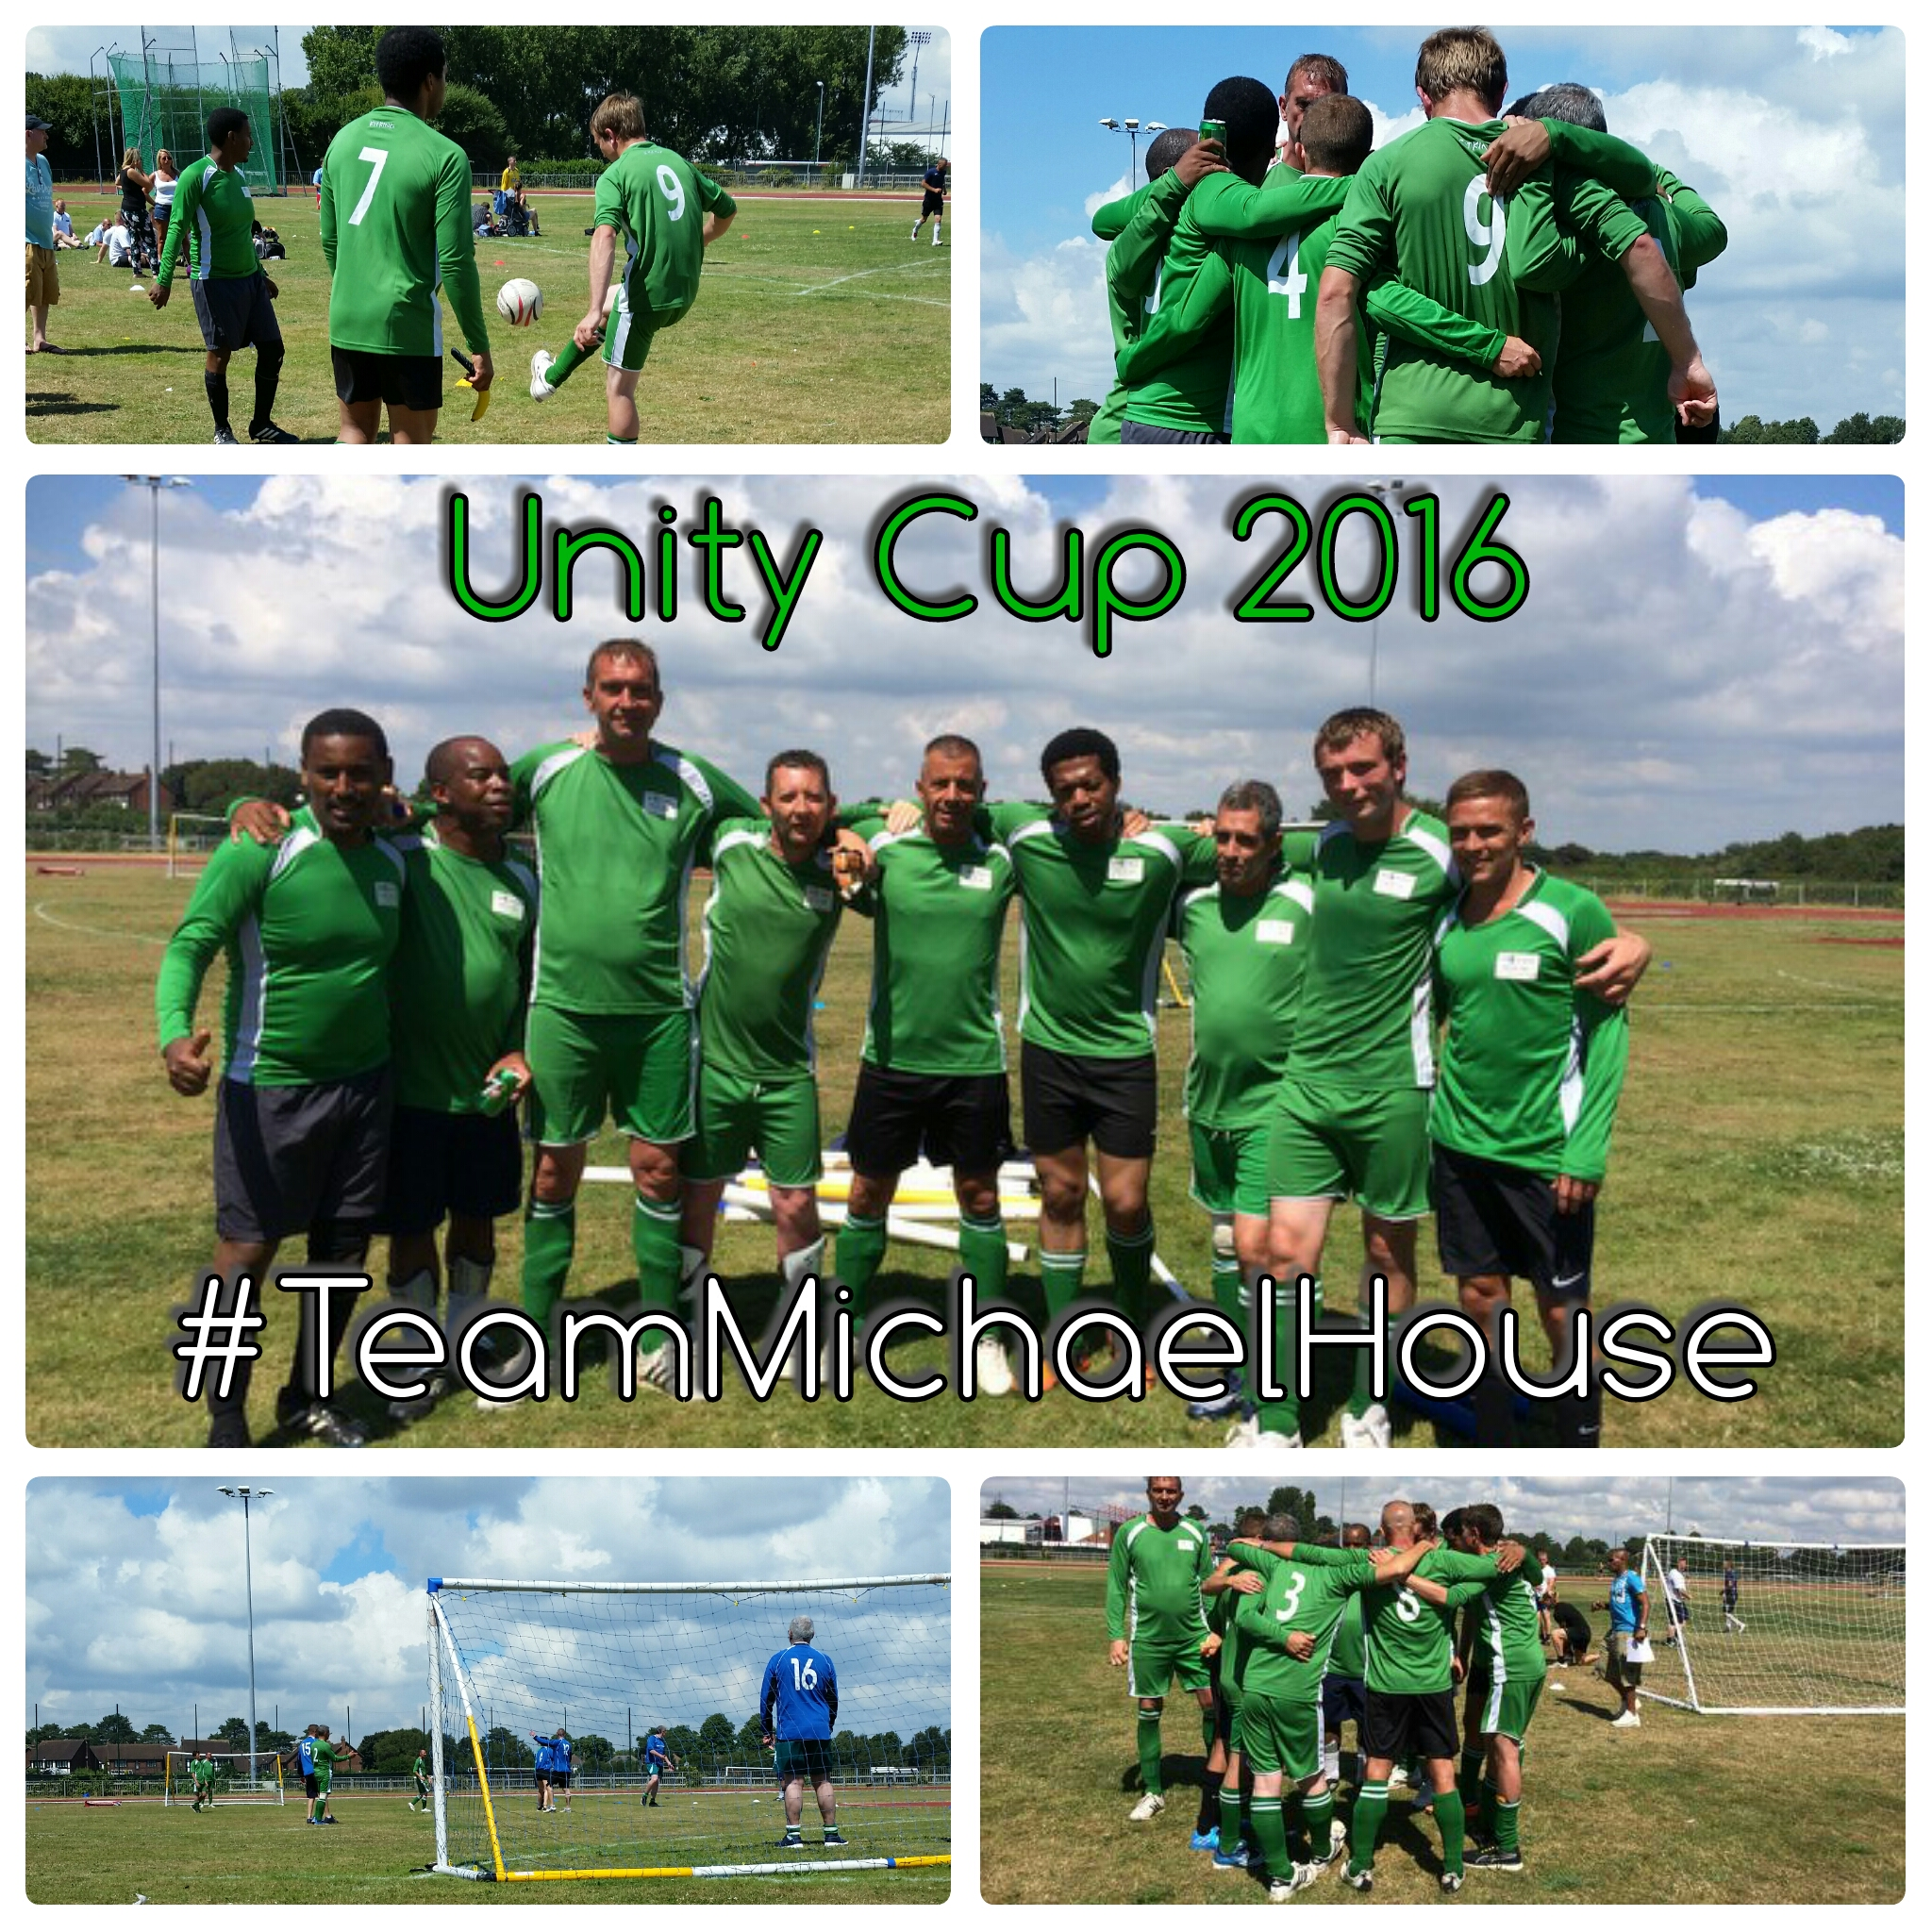 Unity Cup 2016